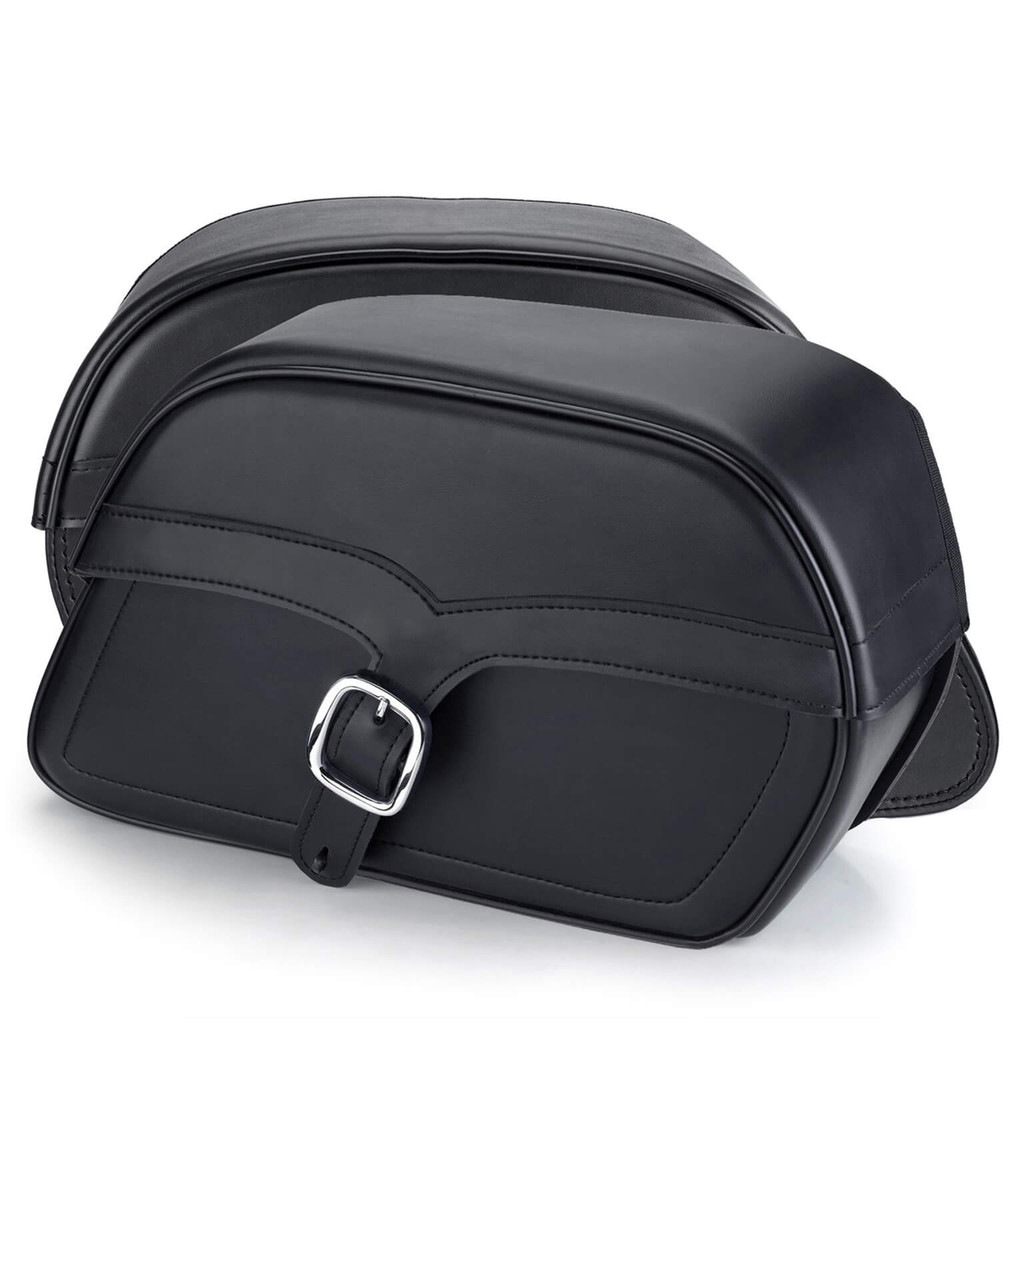 Viking Large SS Slanted Motorcycle Saddlebags For Harley Softail Night Train FXSTB Both Bags View